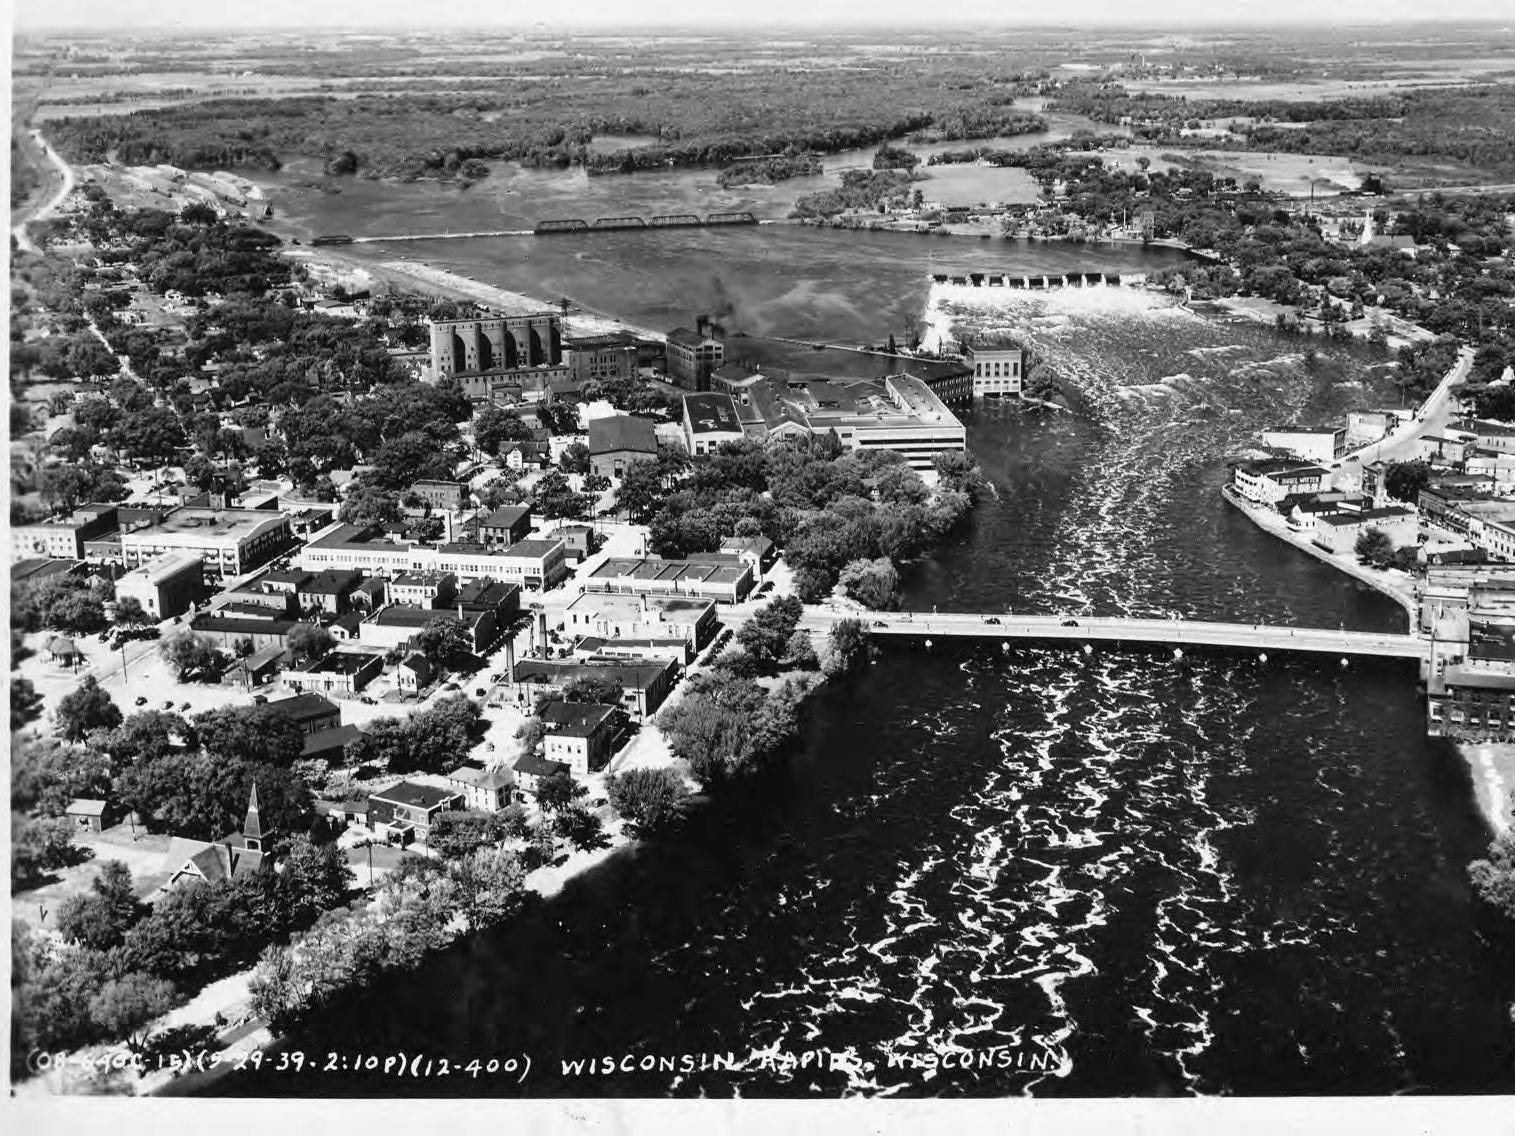 This photo, taken May 22, 1939 shows an aerial view of Wisconsin Rapids.